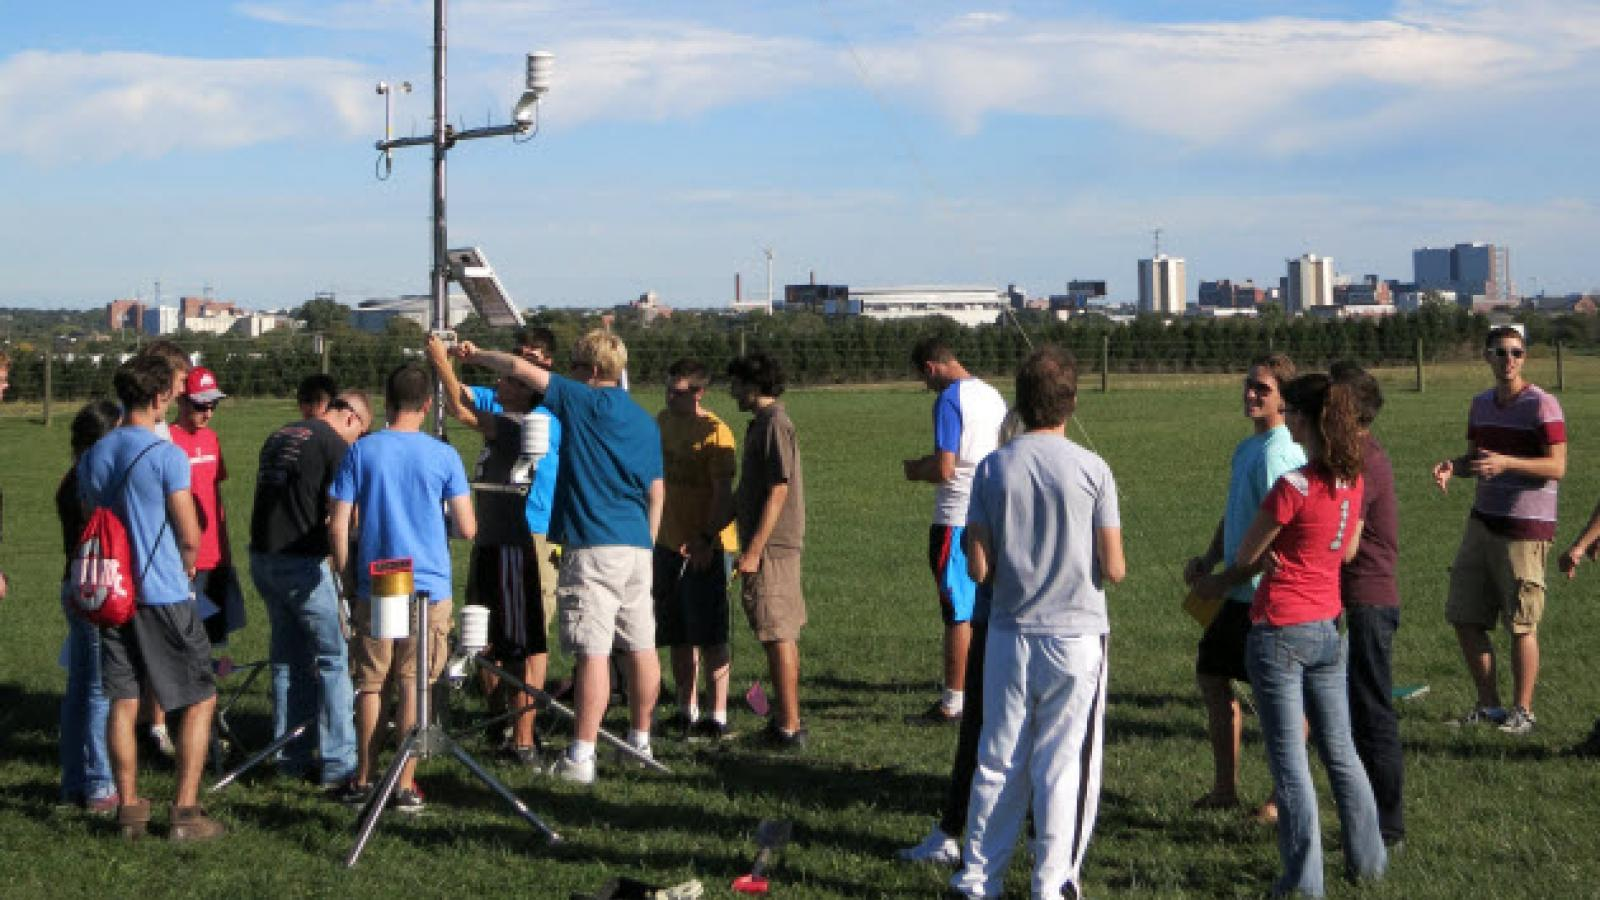 Students, of Microclimatology 5922, in action setting up a weather instruments tower